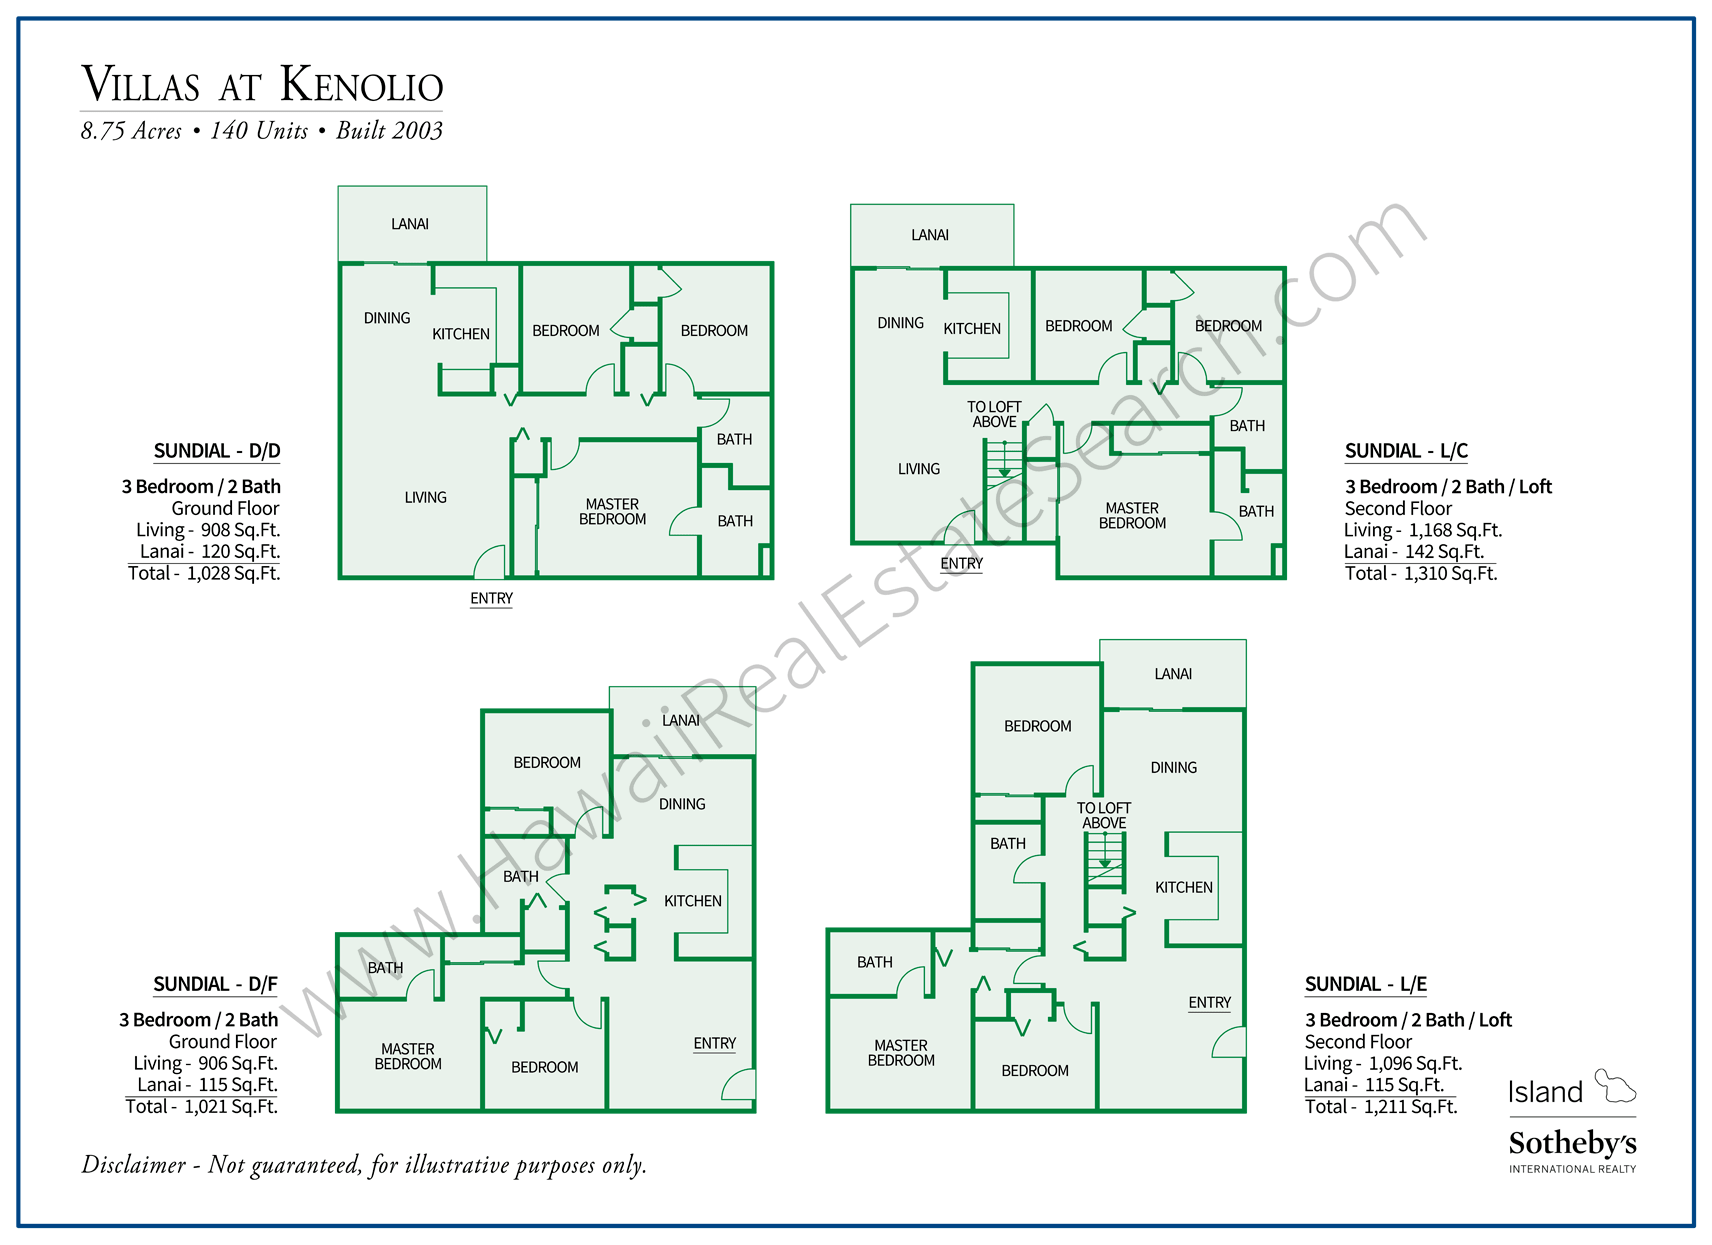 Floor Plans for Villas at Kenolio